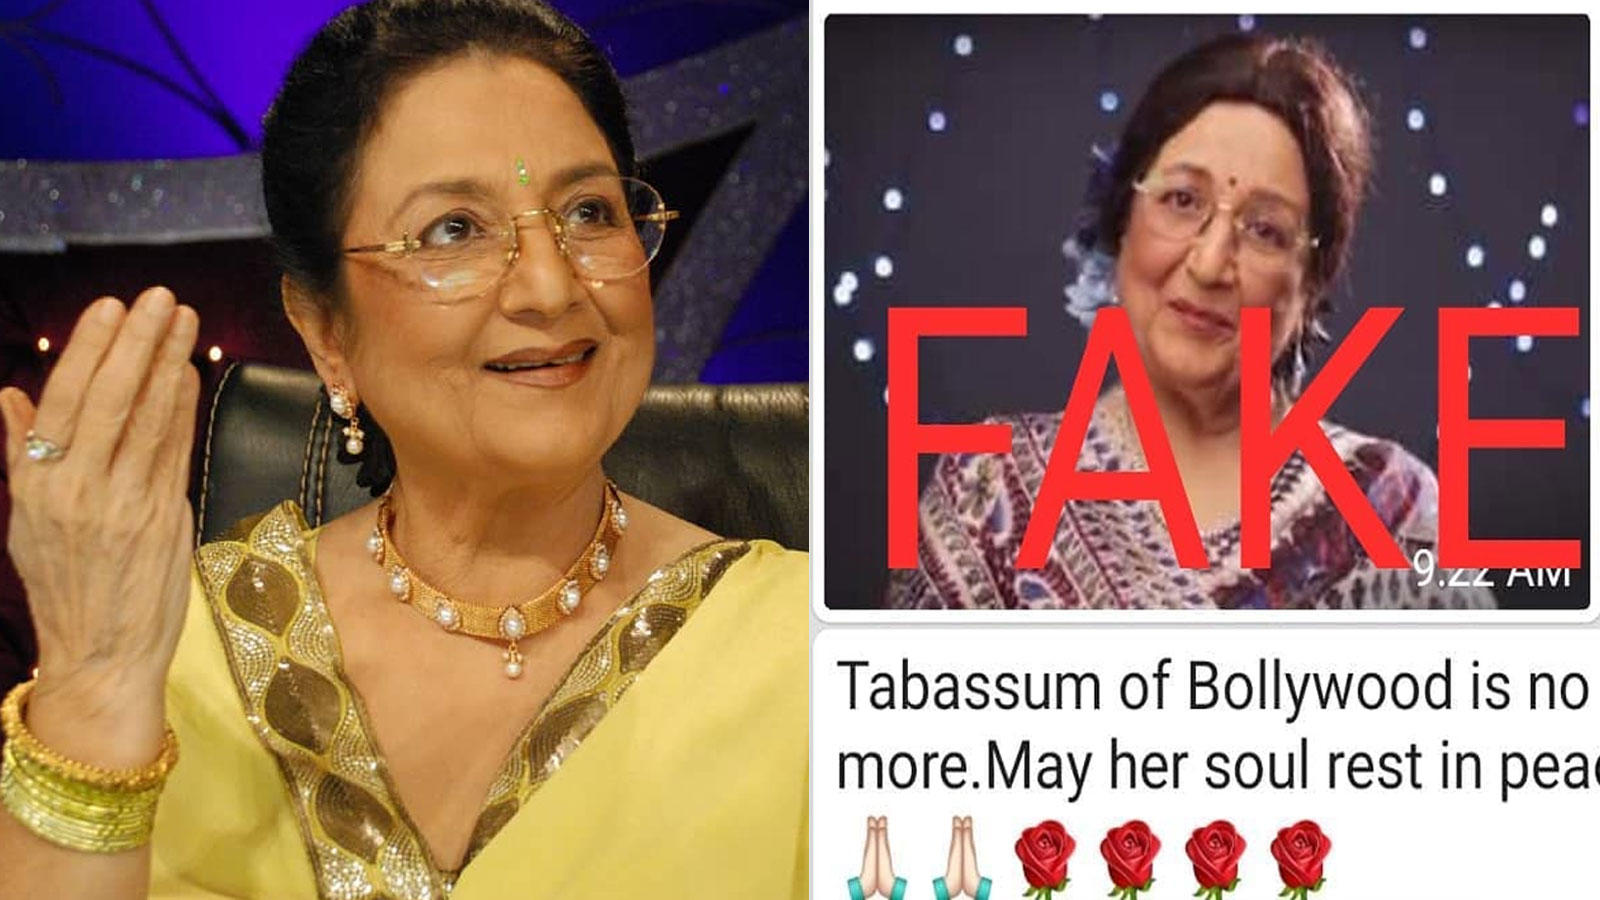 i-am-alive-and-kicking-says-veteran-actress-tabassum-as-she-reacts-to-death-rumours